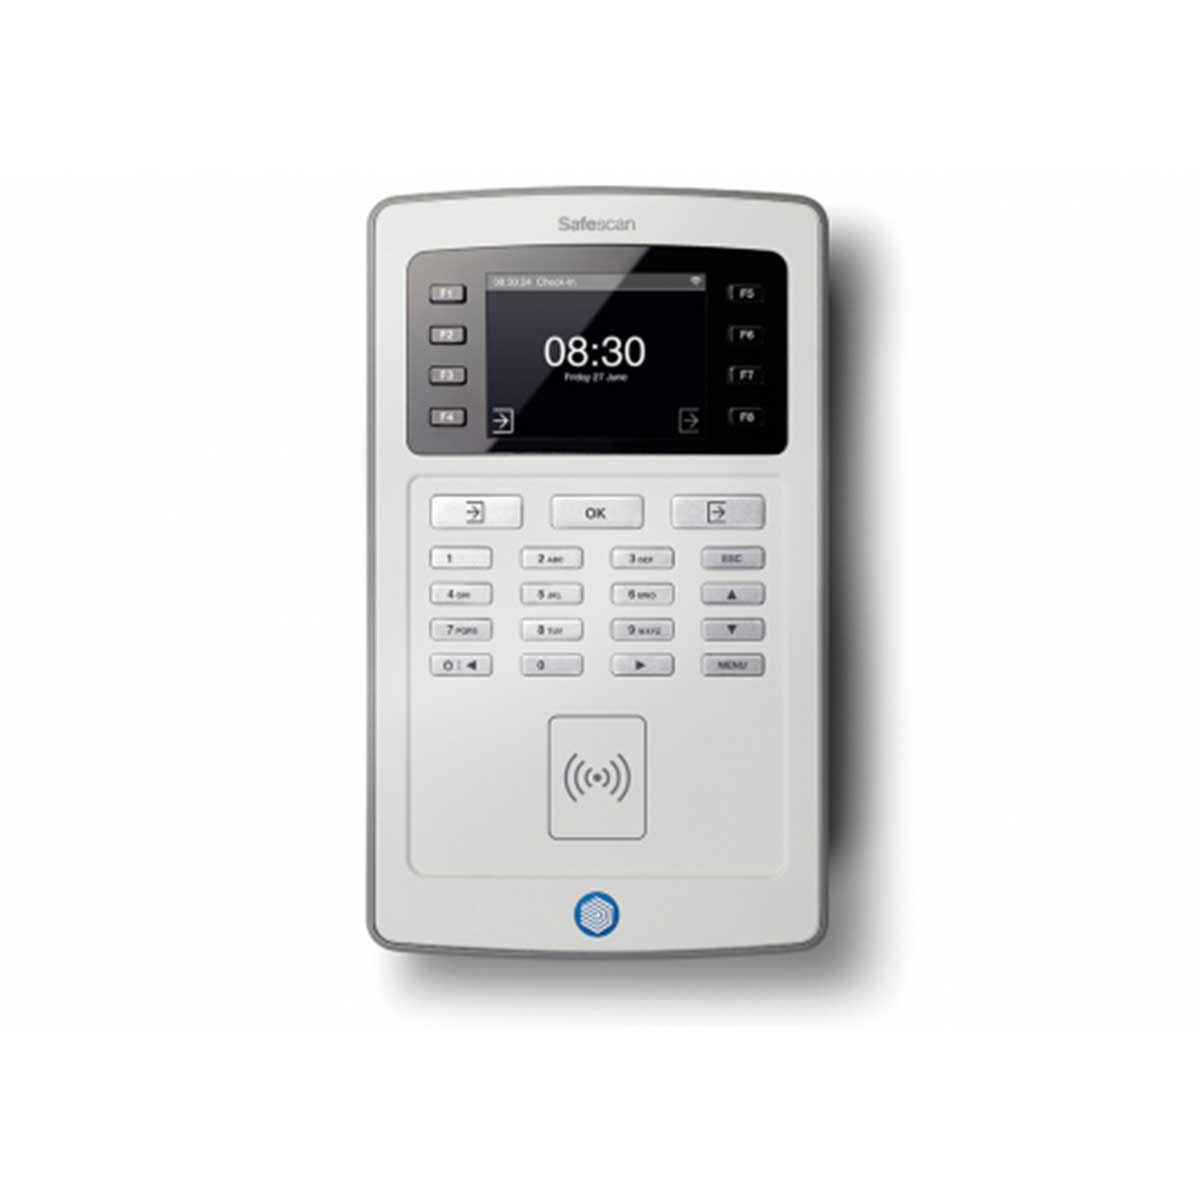 Safescan TA-8015 Time Attendance System and Software with RFID and Wi-Fi - Grey